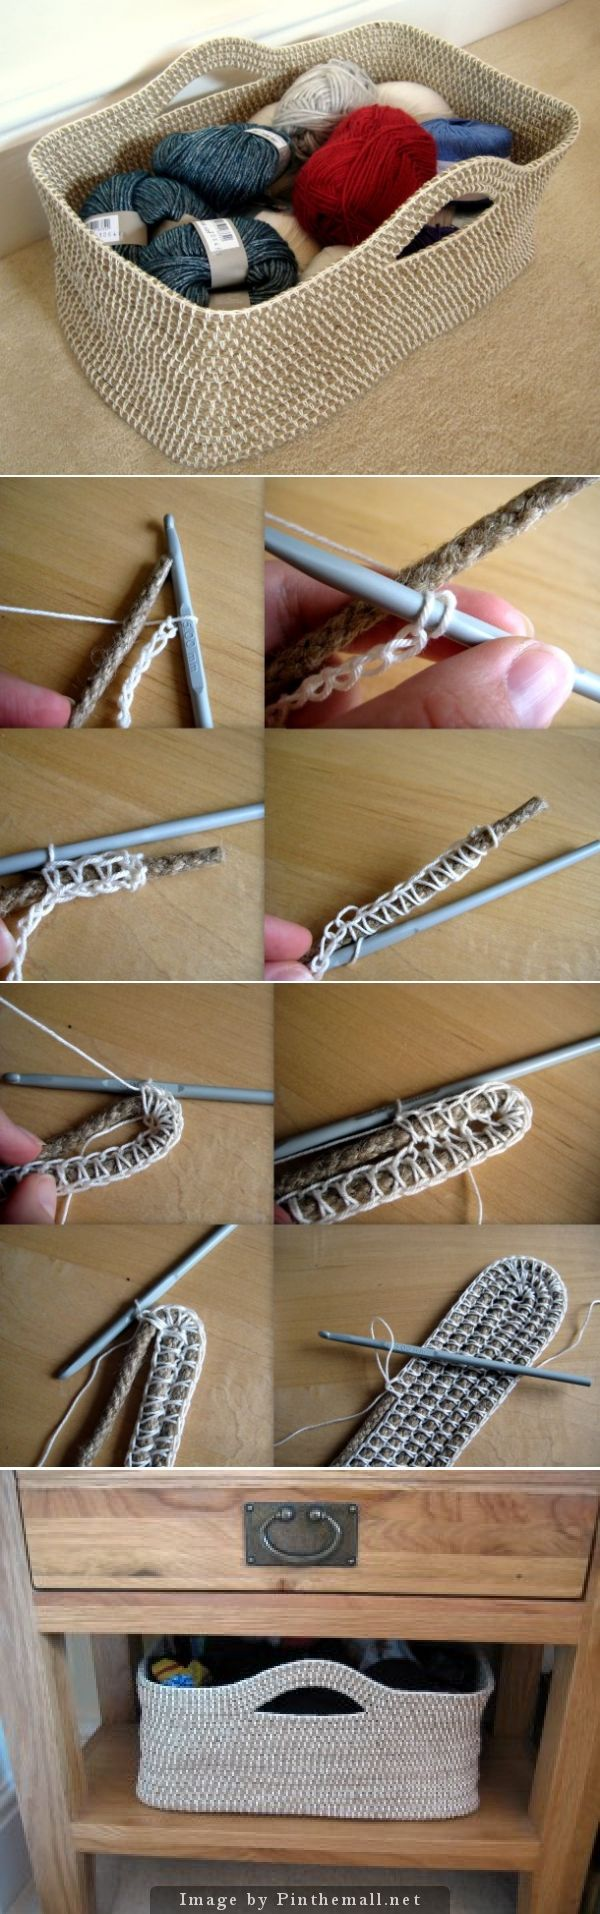 "#Crochet #Tutorial - How to crochet a basket over rope. Lots of informative text and photos to make a sturdy rope container."" #KnittingGuru http://www.pinterest.com/KnittingGuru & http://www.KnittingGuru.etsy.com"